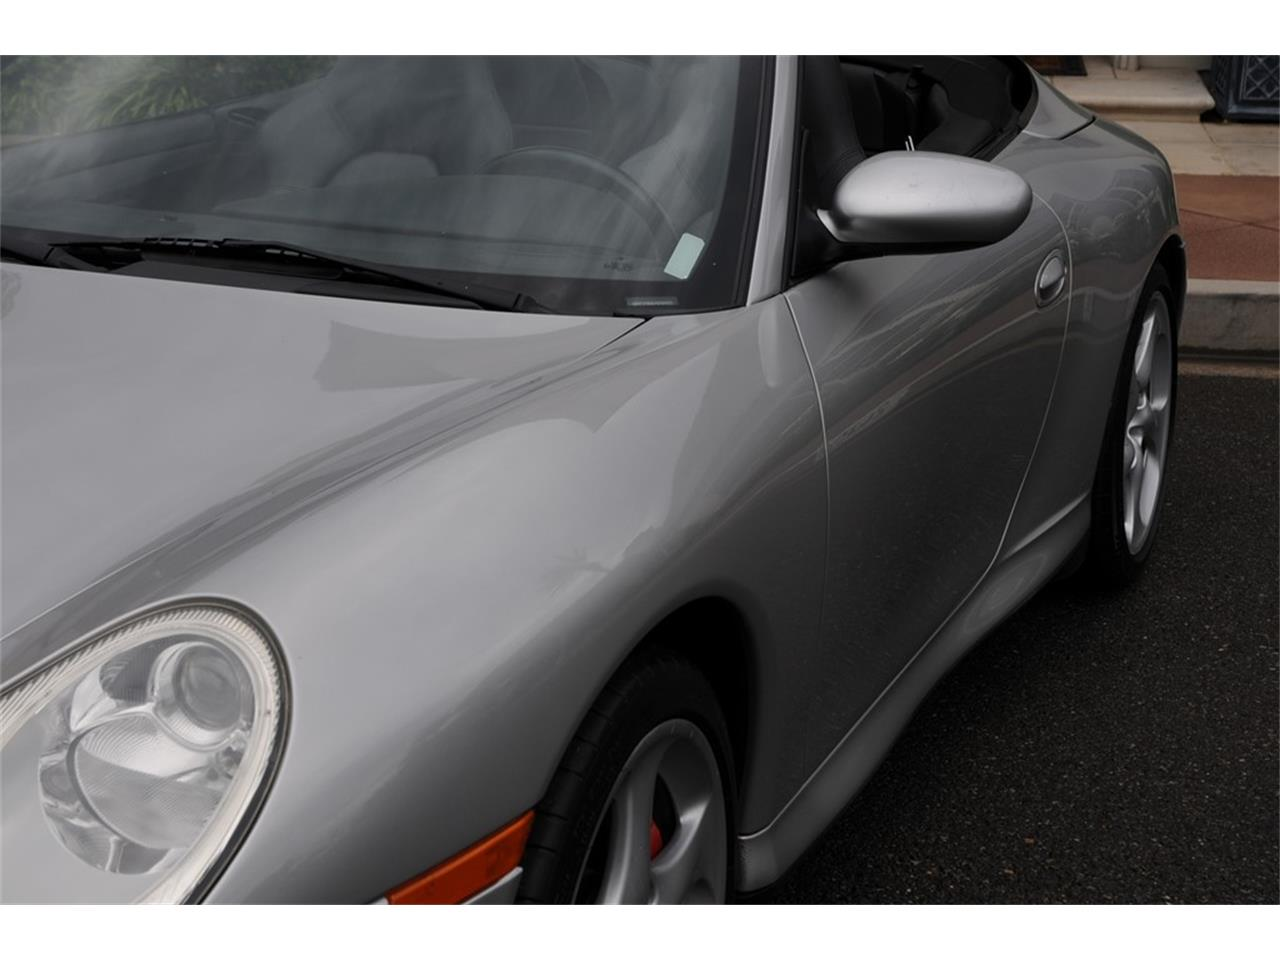 Large Picture of 2004 911 Carrera 4S Cabriolet located in California Offered by Star European Inc. - QK9K